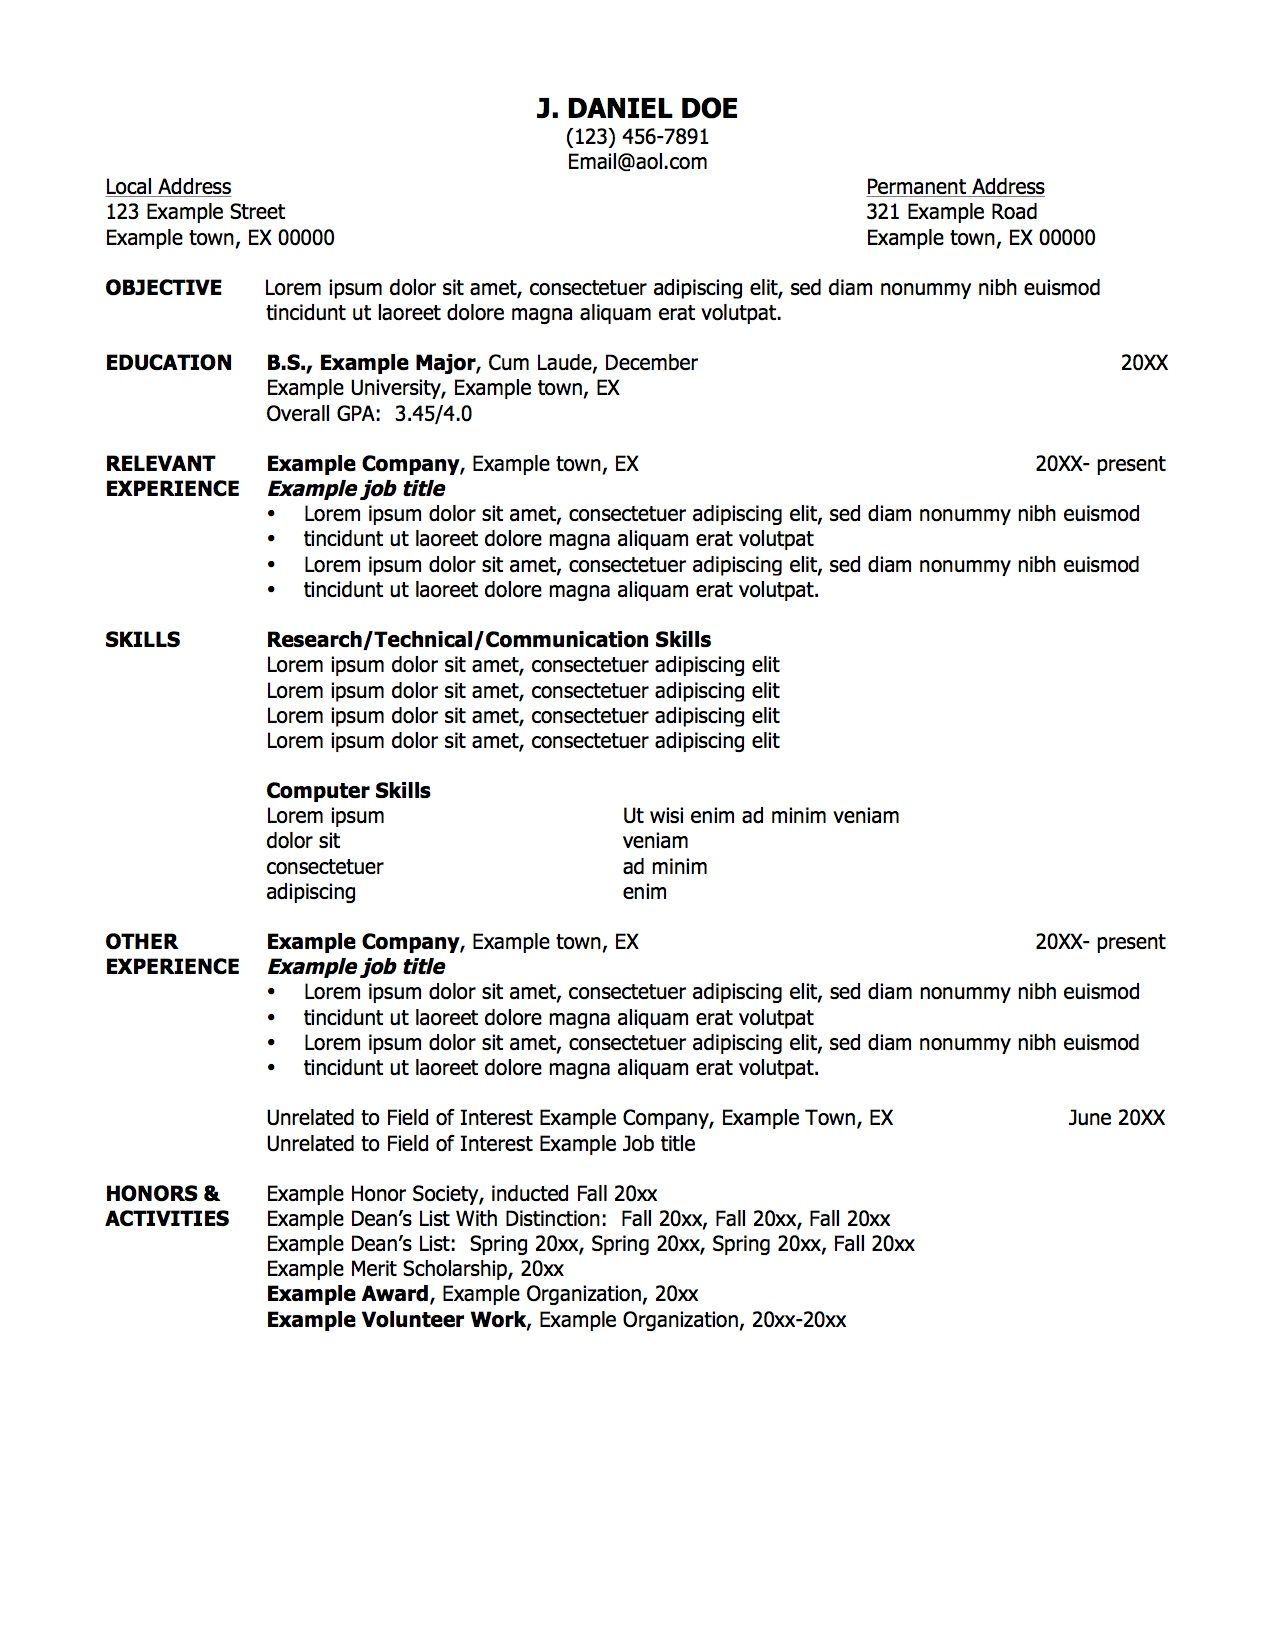 Sample Resume With Professional Title For Job Objective ResumeSample ...